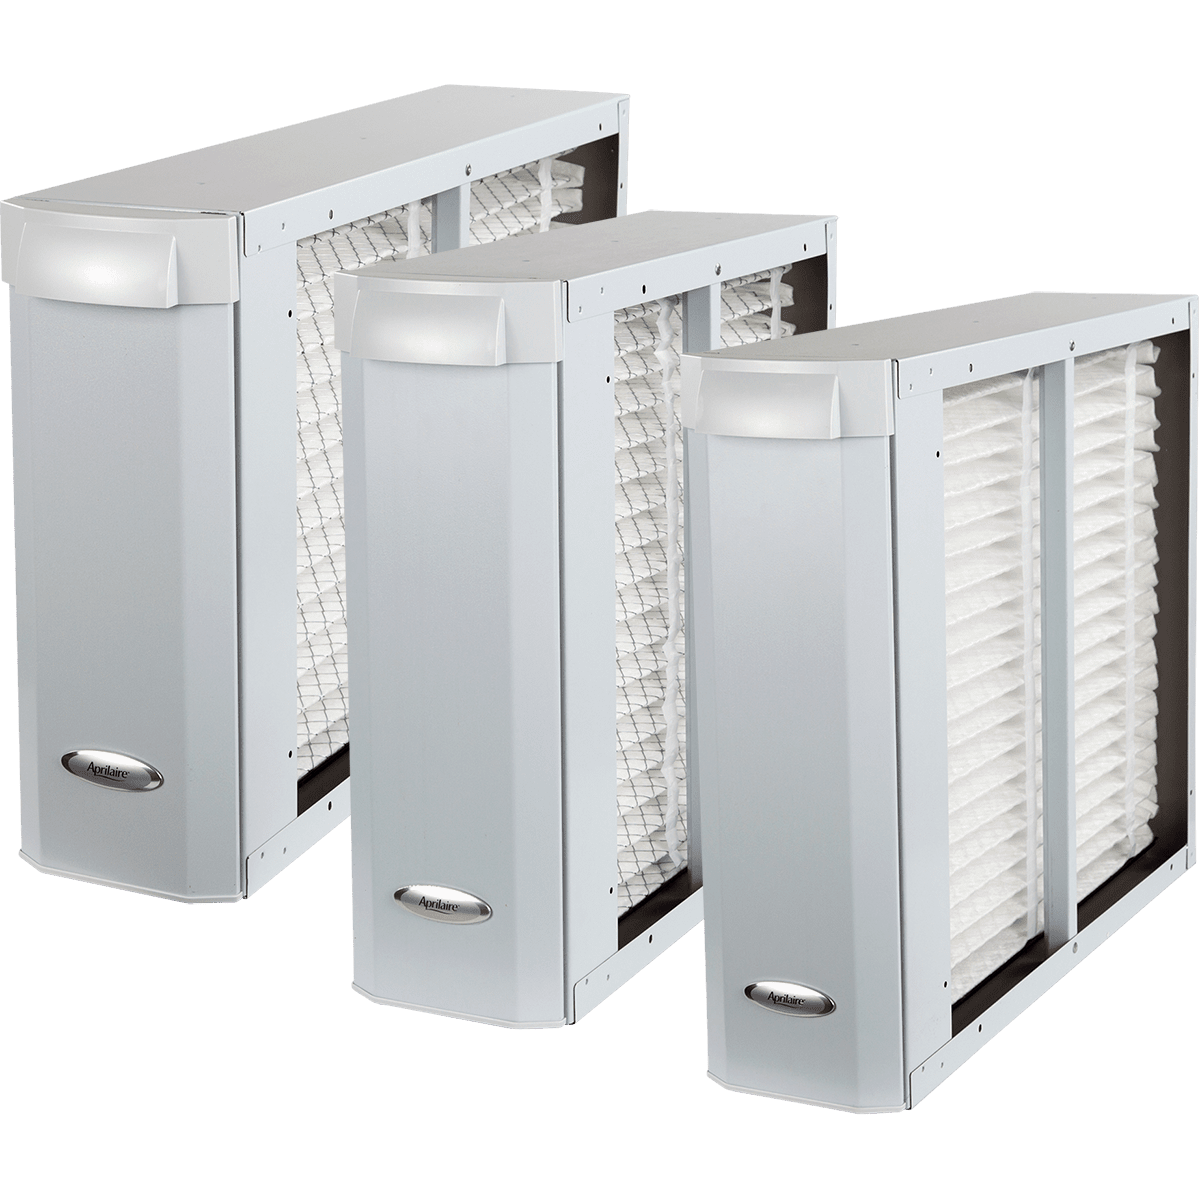 Homes Need a Viable Air Filtration System